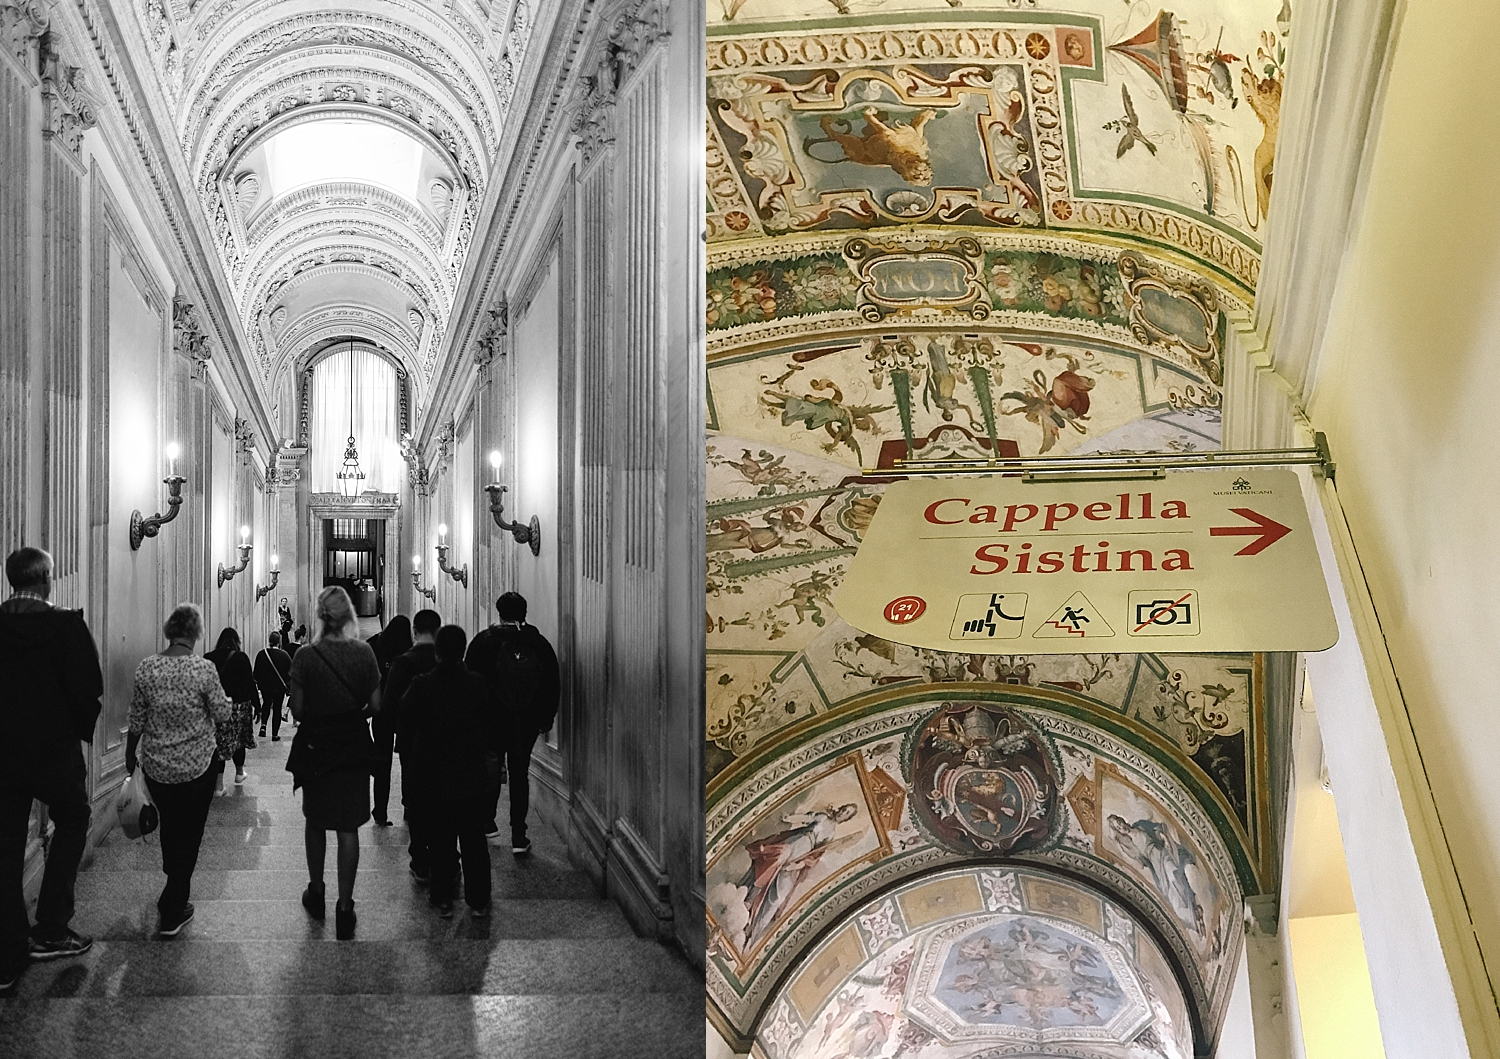 No photos allowed of the  Sistine Chapel by Michelangelo  - one of history's greatest artistic accomplishments.